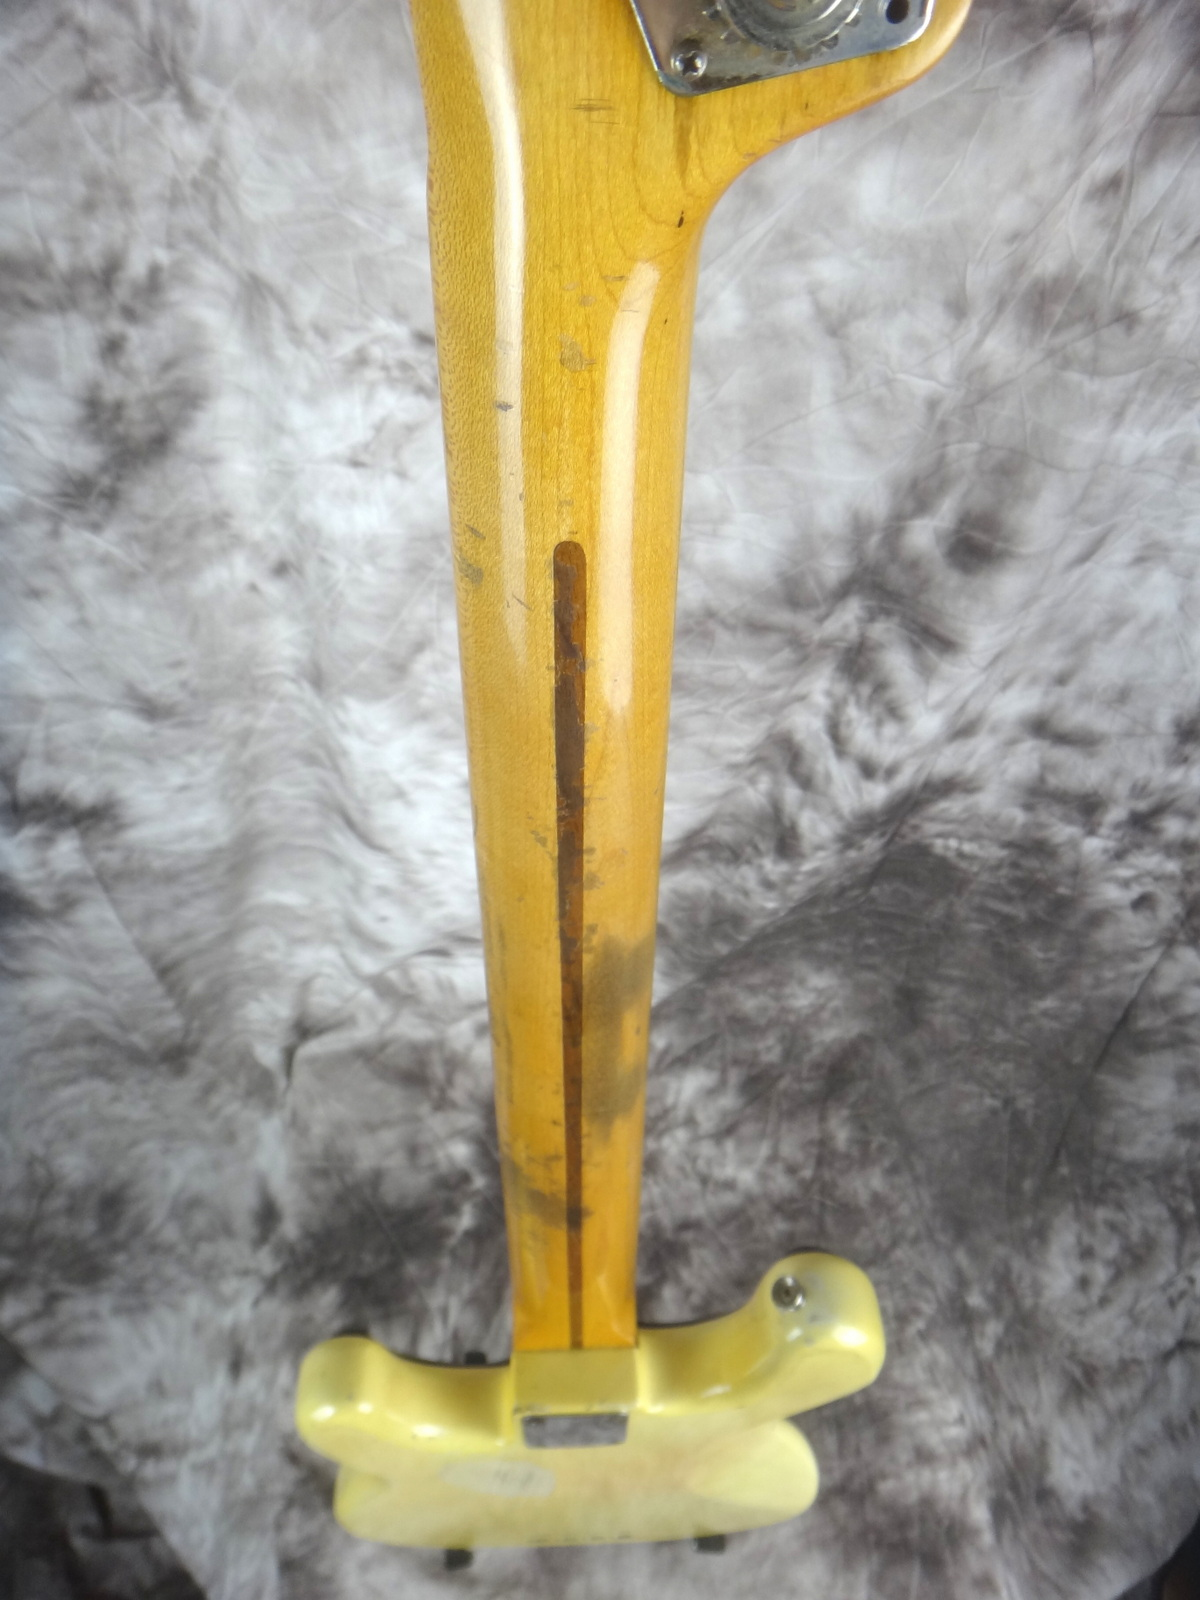 img/vintage/1599/Fender-Precision-Bass-1955-blond-007.JPG